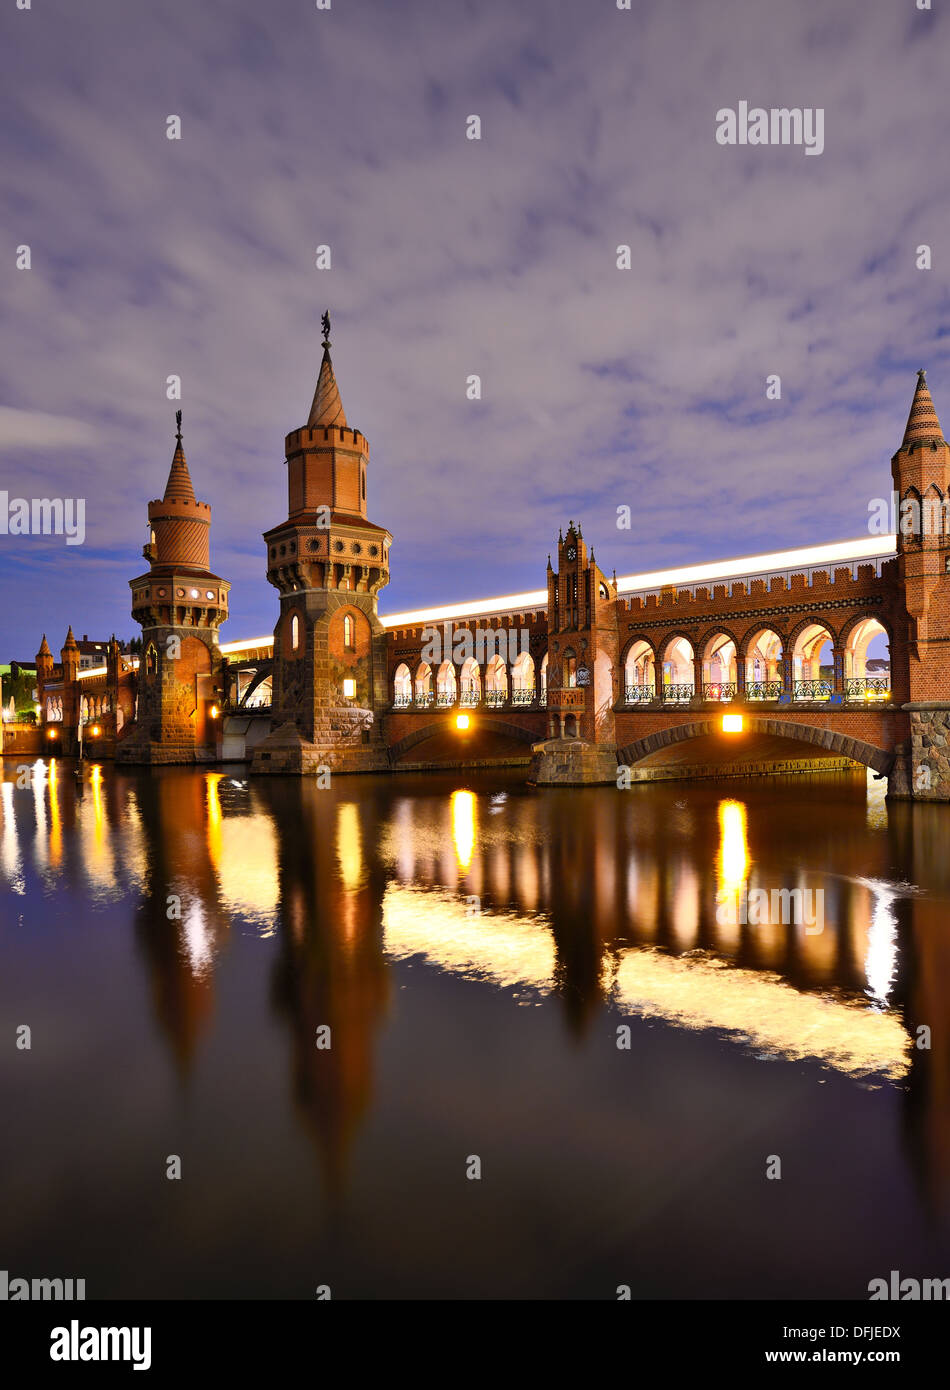 Oberbaum Bridge sur la rivière Spree à Berlin, Allemagne. Photo Stock